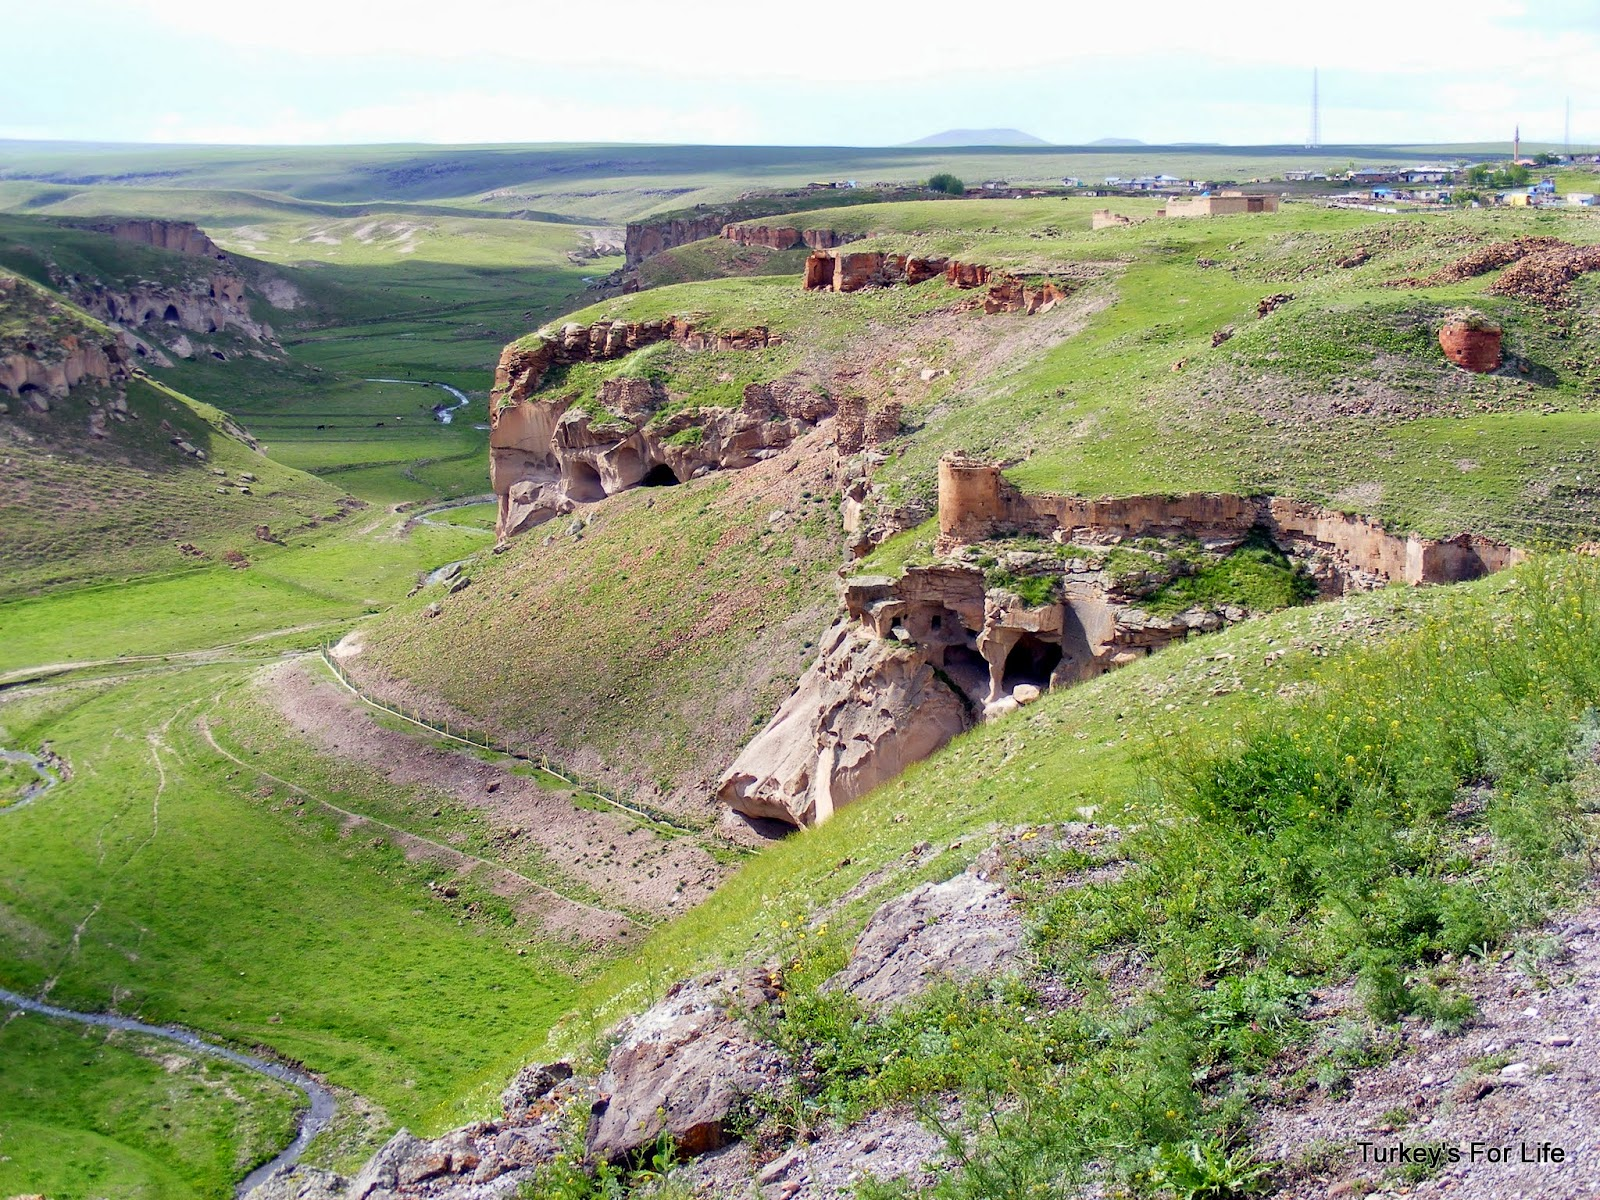 The Landscapes Of Ani, Kars